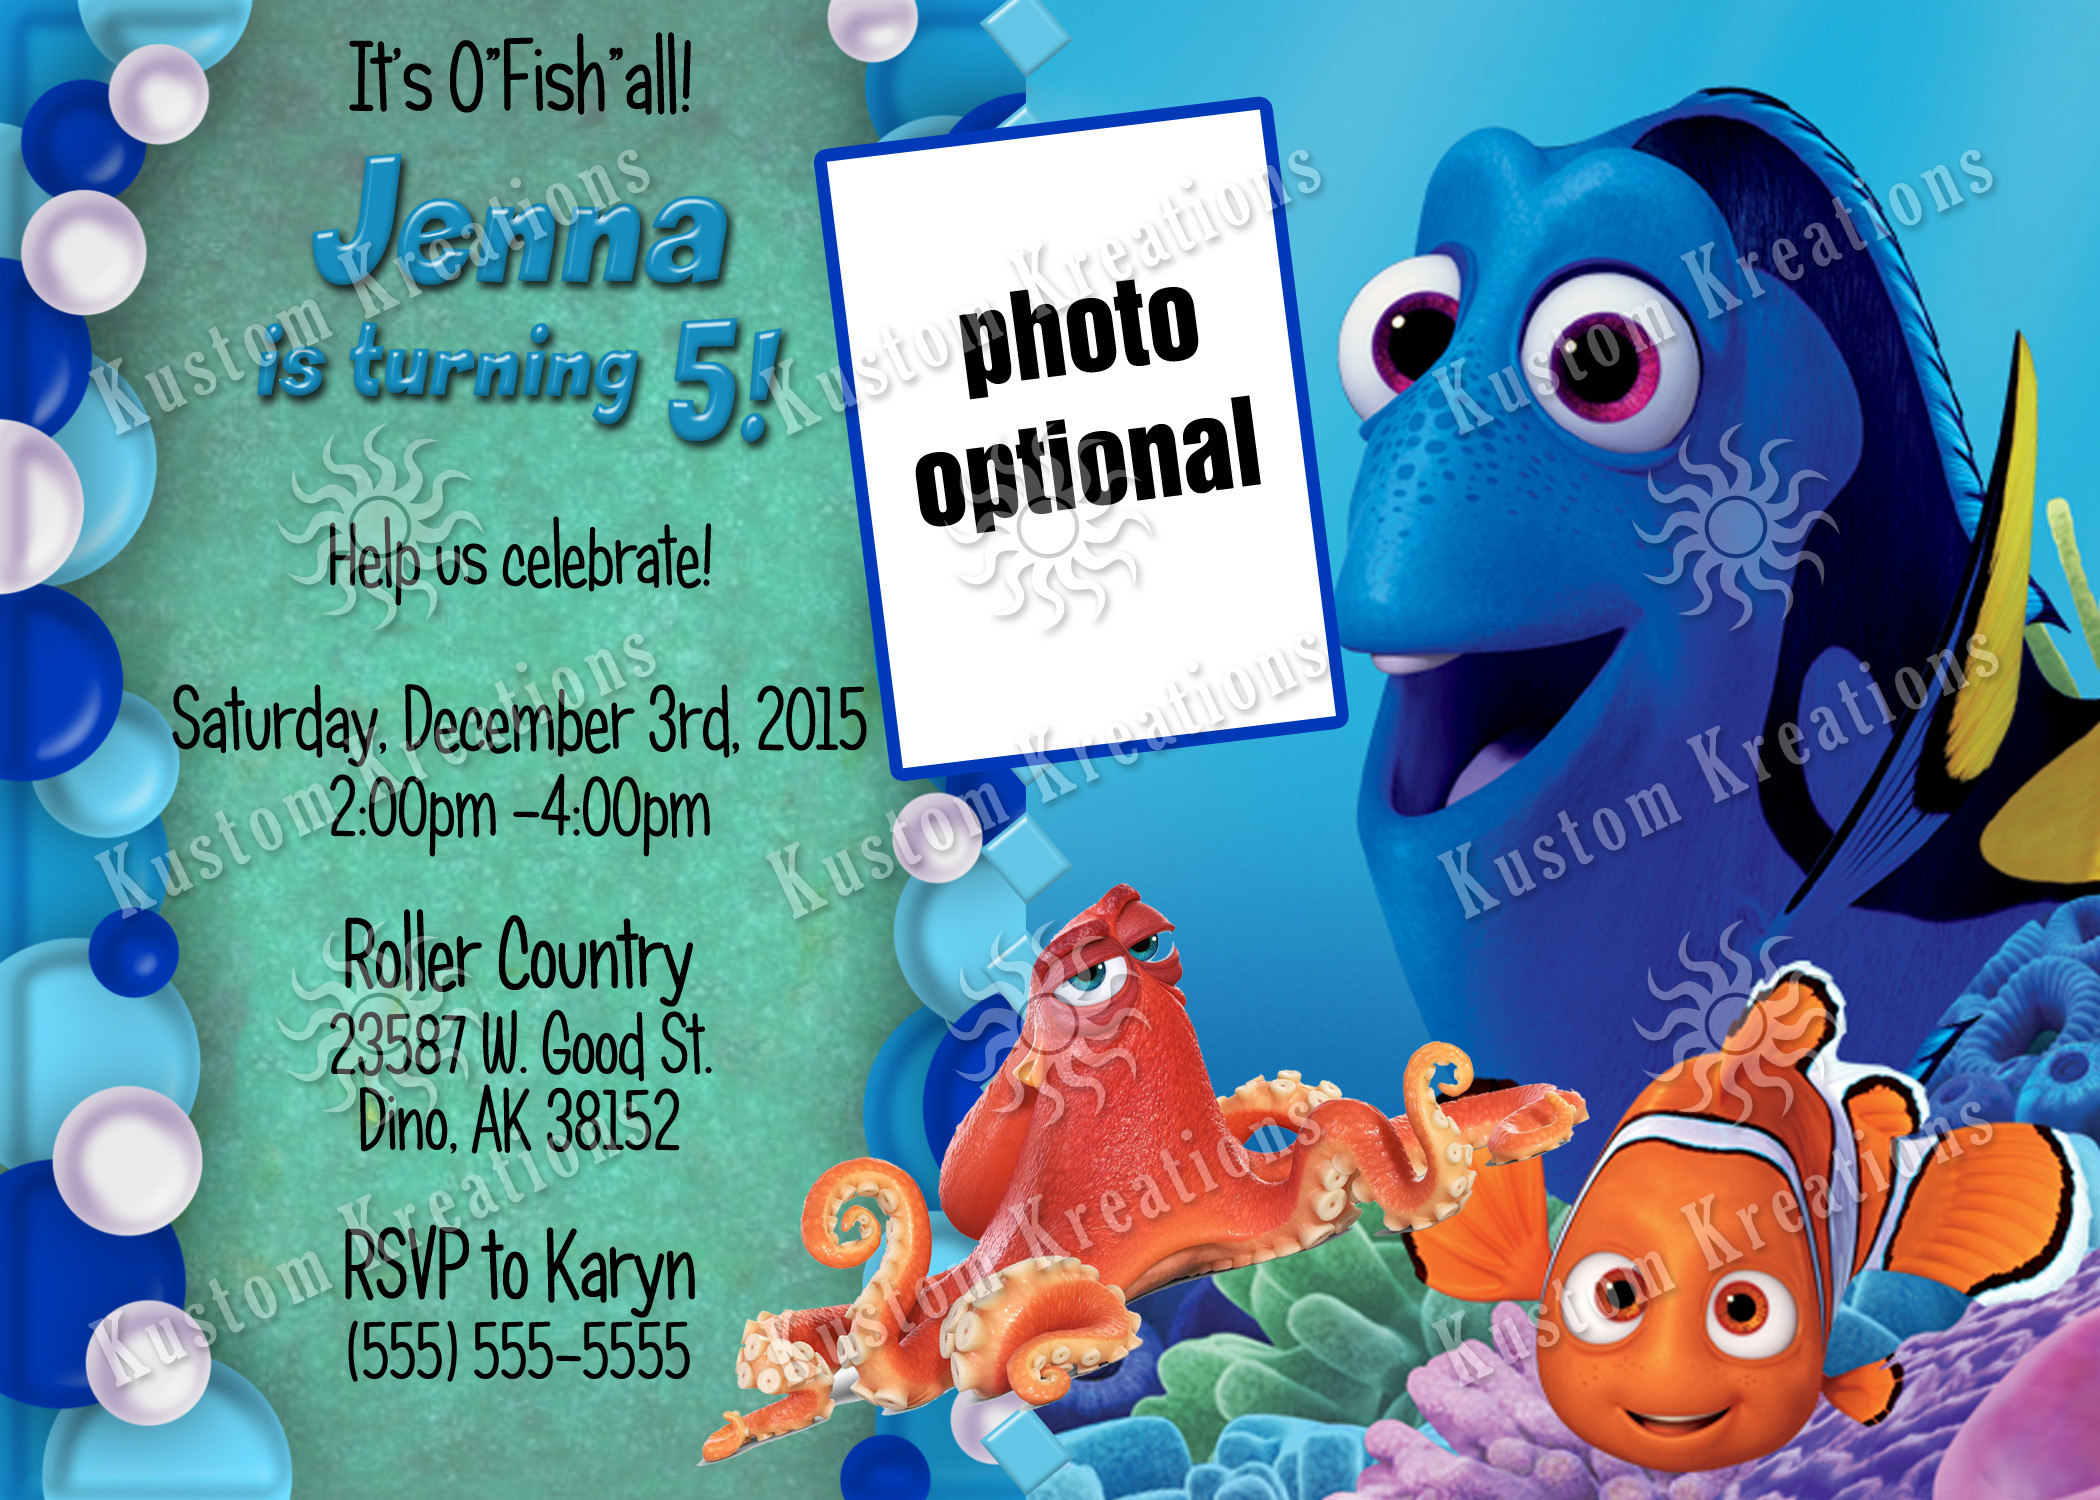 Best ideas about Finding Dory Birthday Invitations . Save or Pin Finding Dory Birthday Invitations Now.